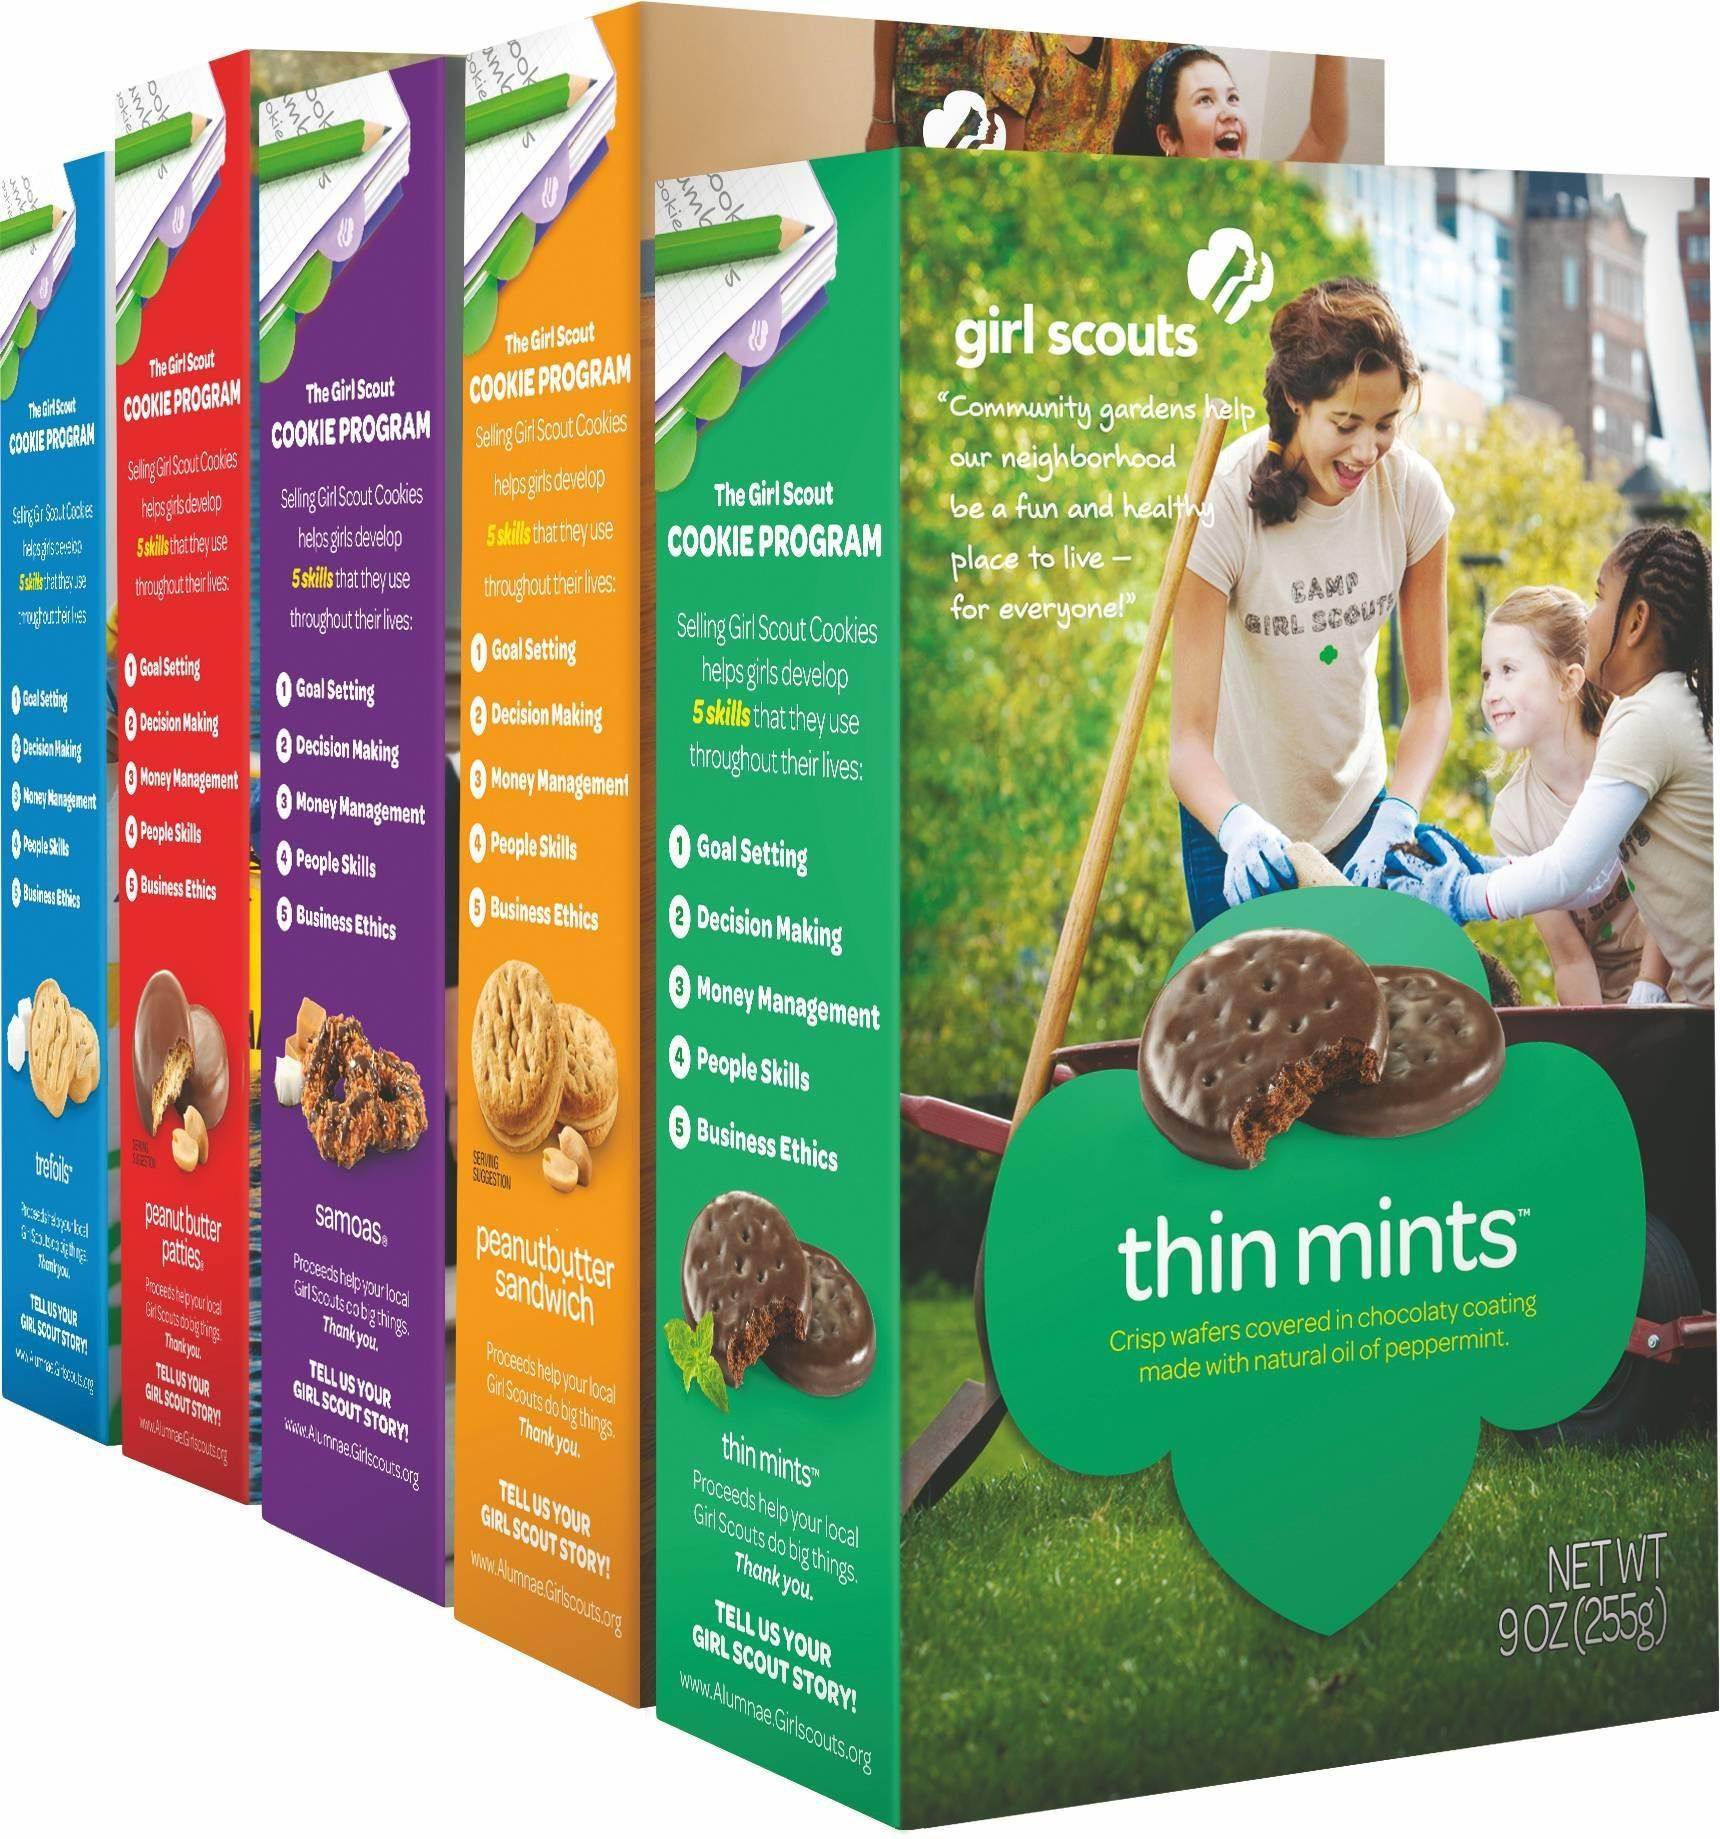 find girl scout cookies near you The girl scout i usually buy cookies from i lost contact with his year and panicked when i realized i needed cookies and had no one to order from downloaded the cookie finder and it told me there were girl scouts selling at my nearest walmart i went and sure enough they were there they didn't have all the kinds of.